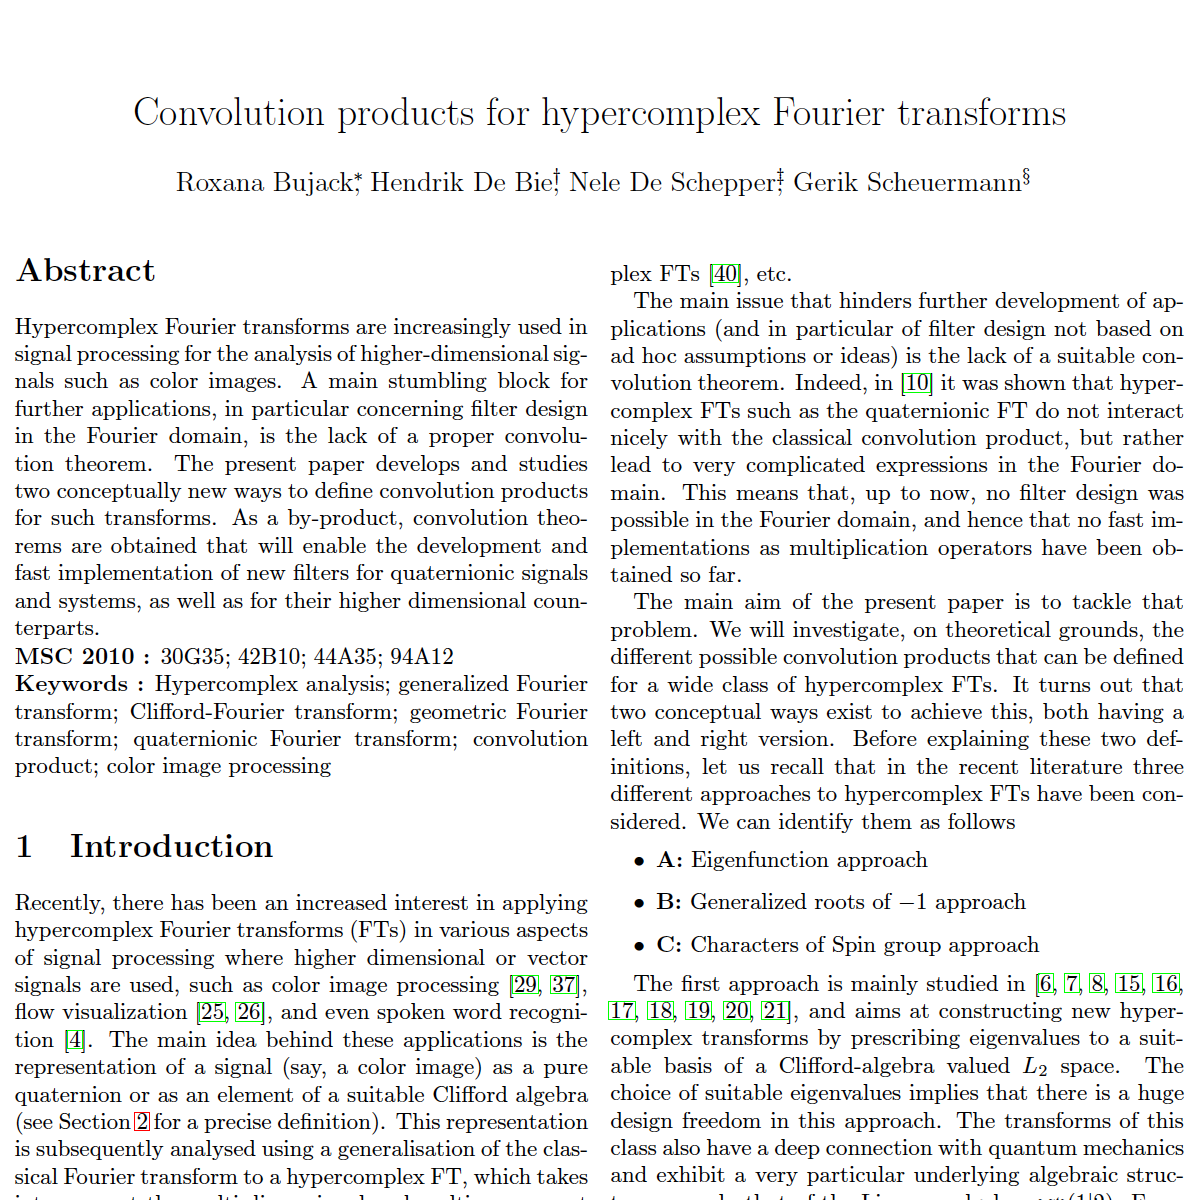 Convolution Products for Hypercomplex Fourier Transforms